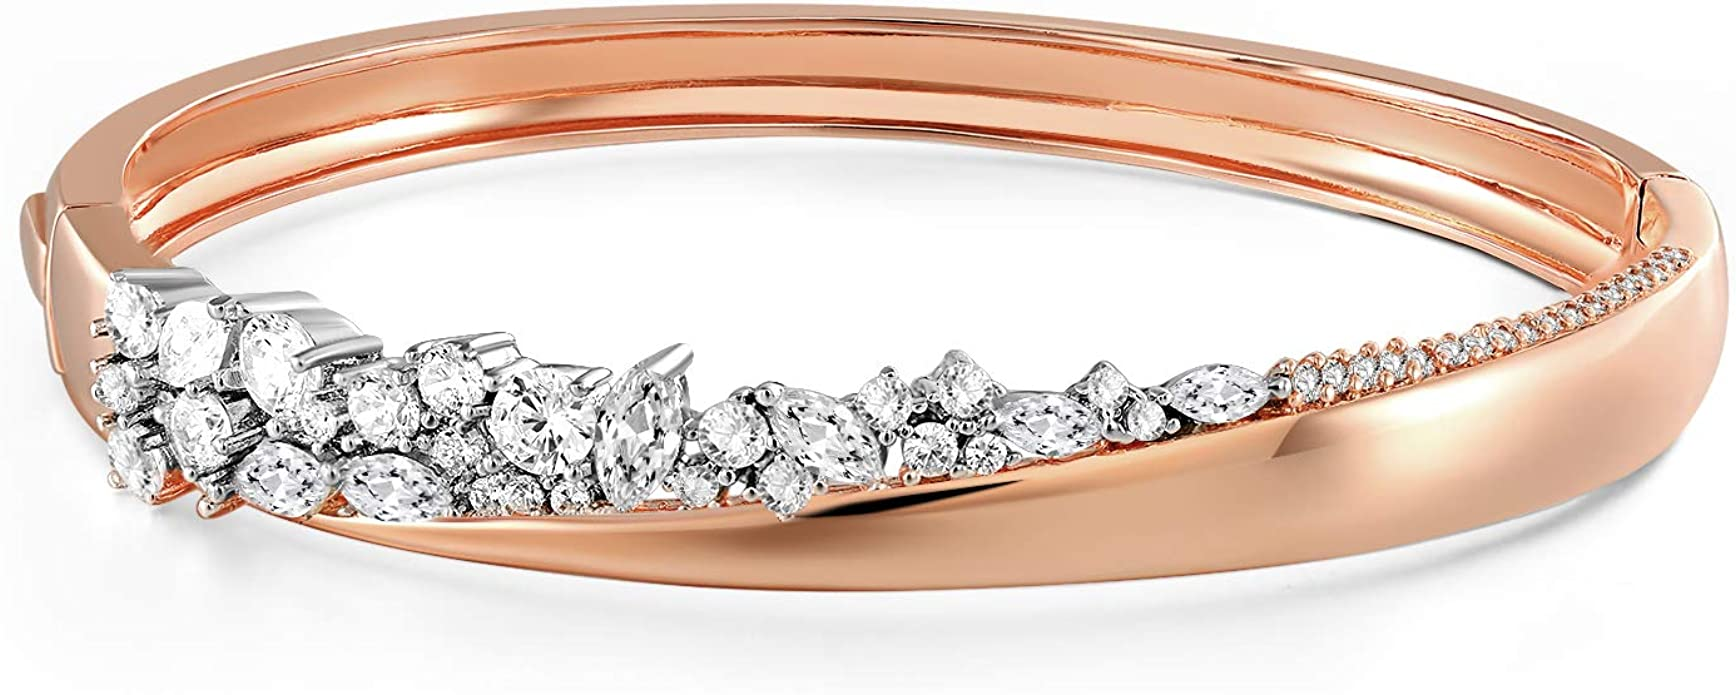 18K Rose Gold Plated,Cuff,Bangle,AAAAA CZ,Bracelet,Valentine Gift,Lover Gift,Bangle Gift,Diamond Bangle,Quality CZ,Friend Gift,Engagement